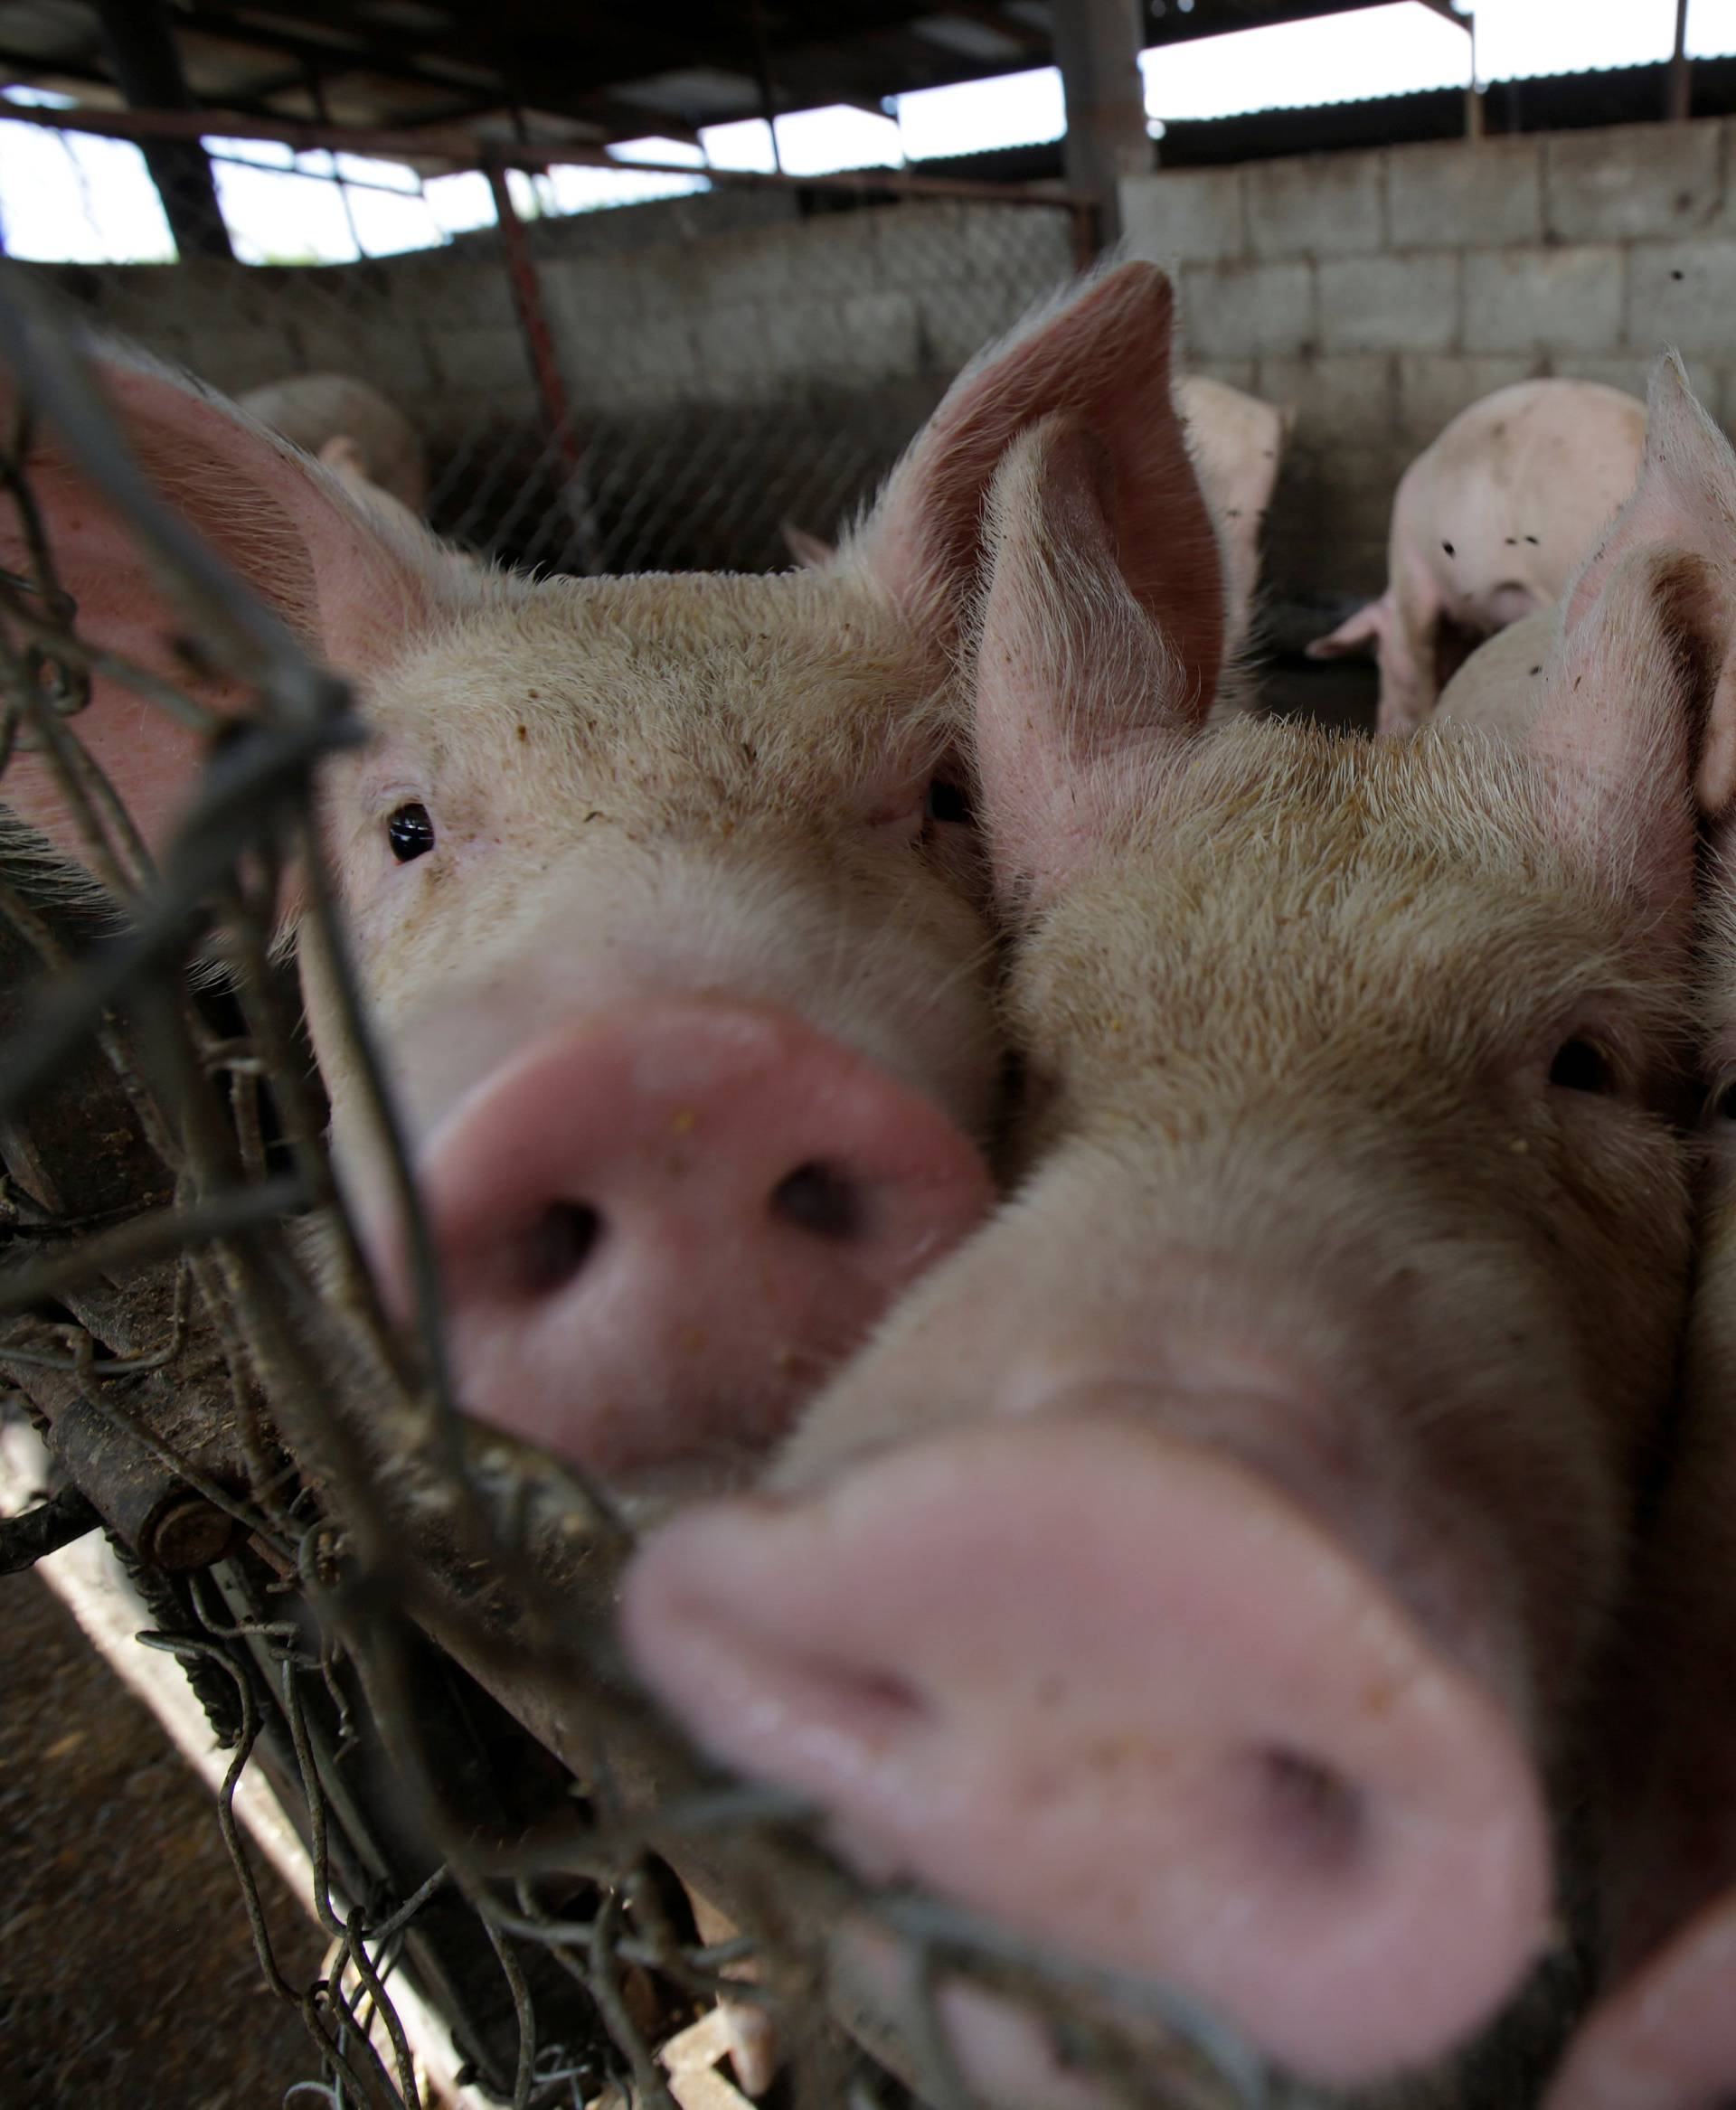 Pigs are pictured at a pig farm in Ciudad Juarez